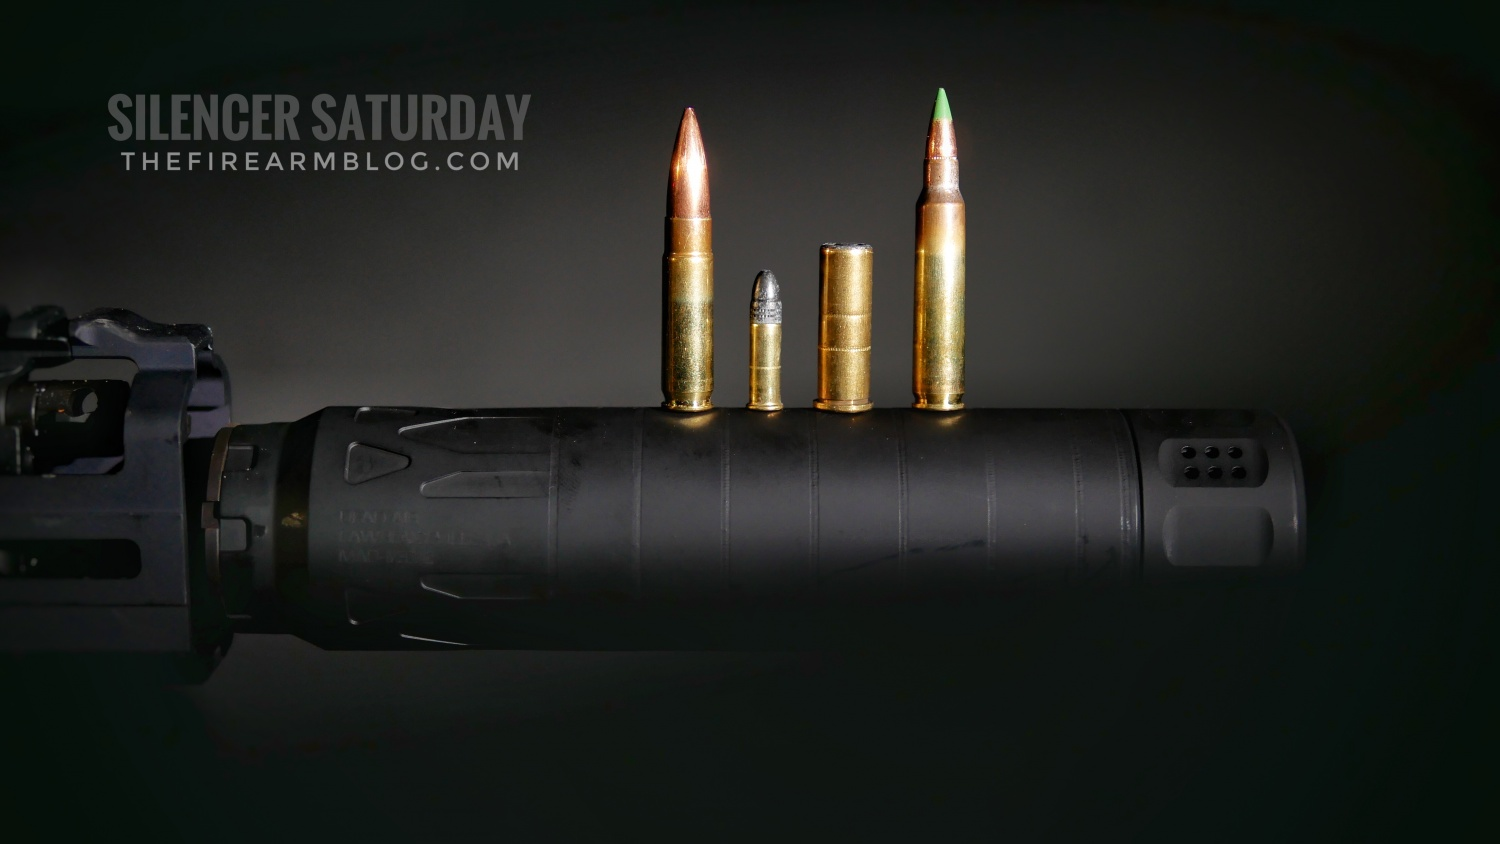 SILENCER SATURDAY #43: Top 5 Best Rounds To Suppress